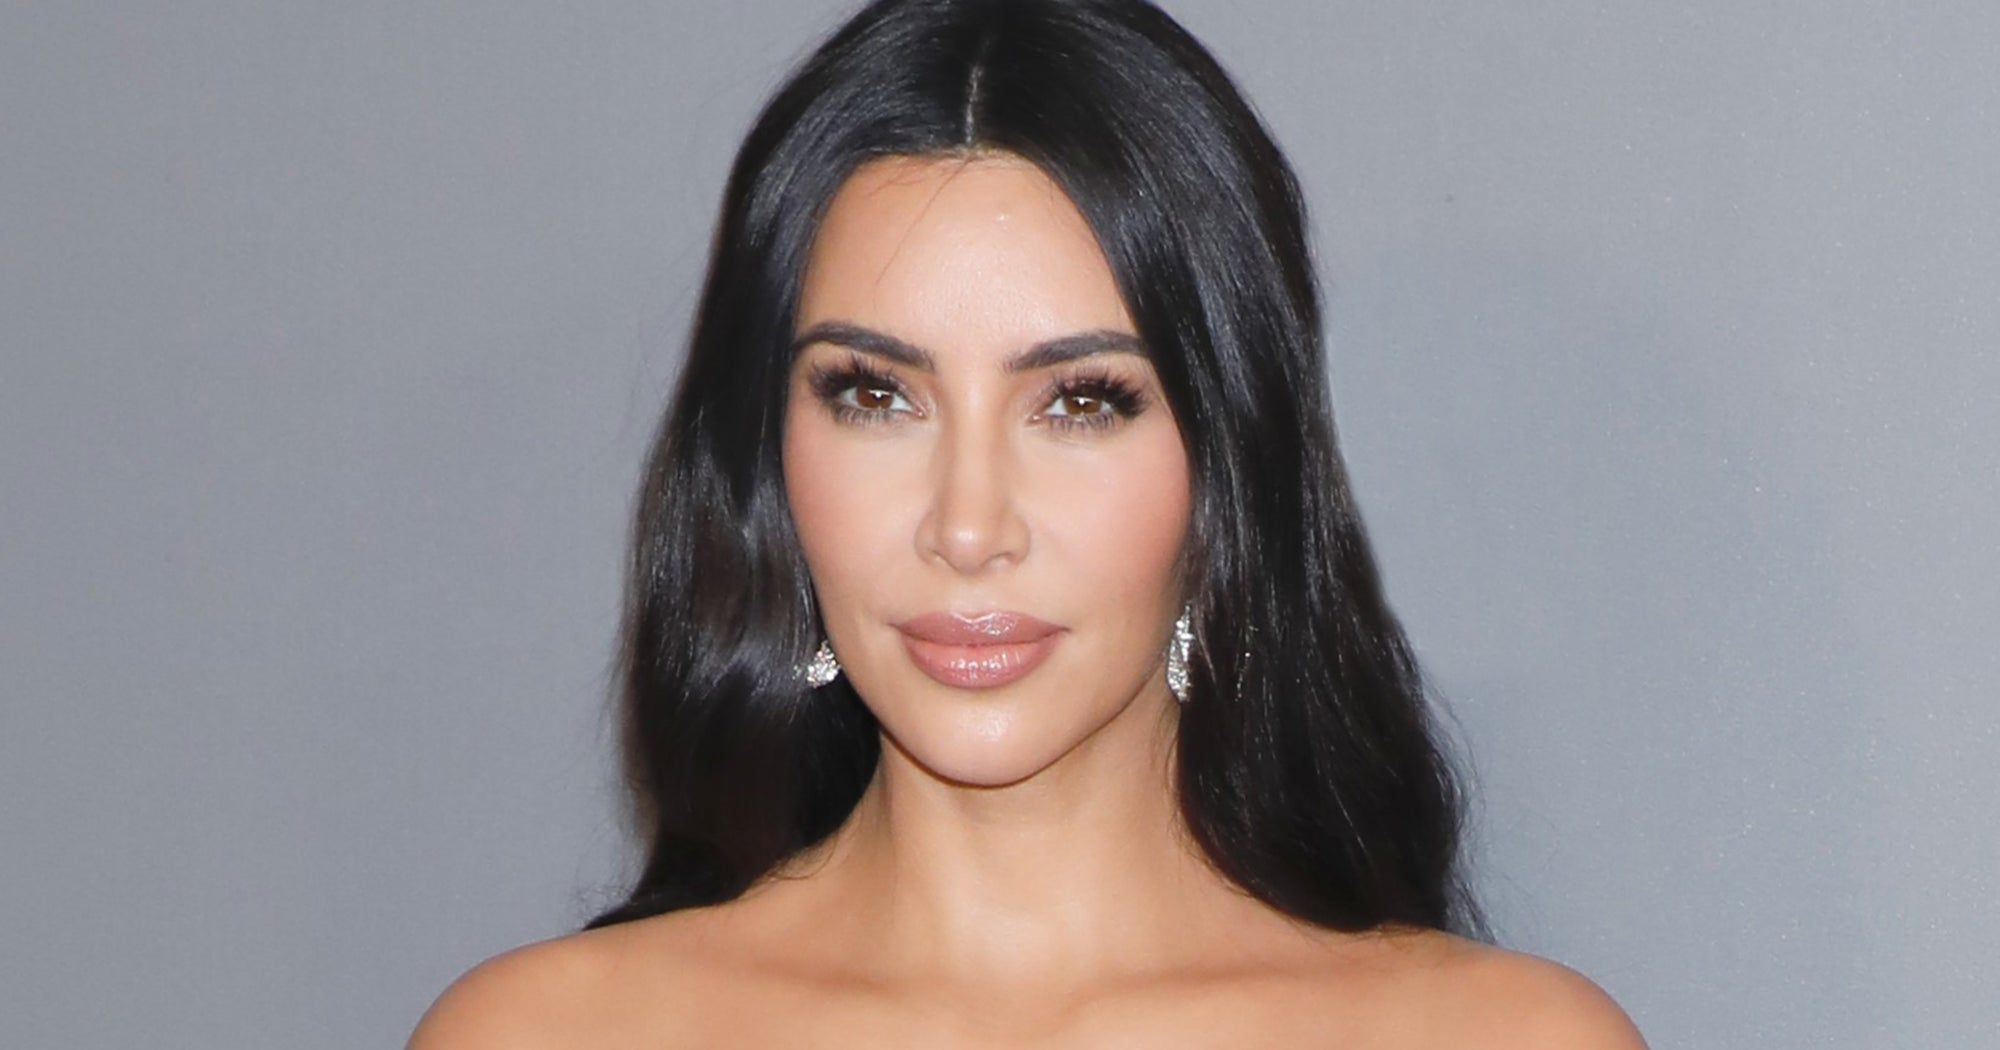 So, When Will Kim Kardashian Officially Become A Lawyer?